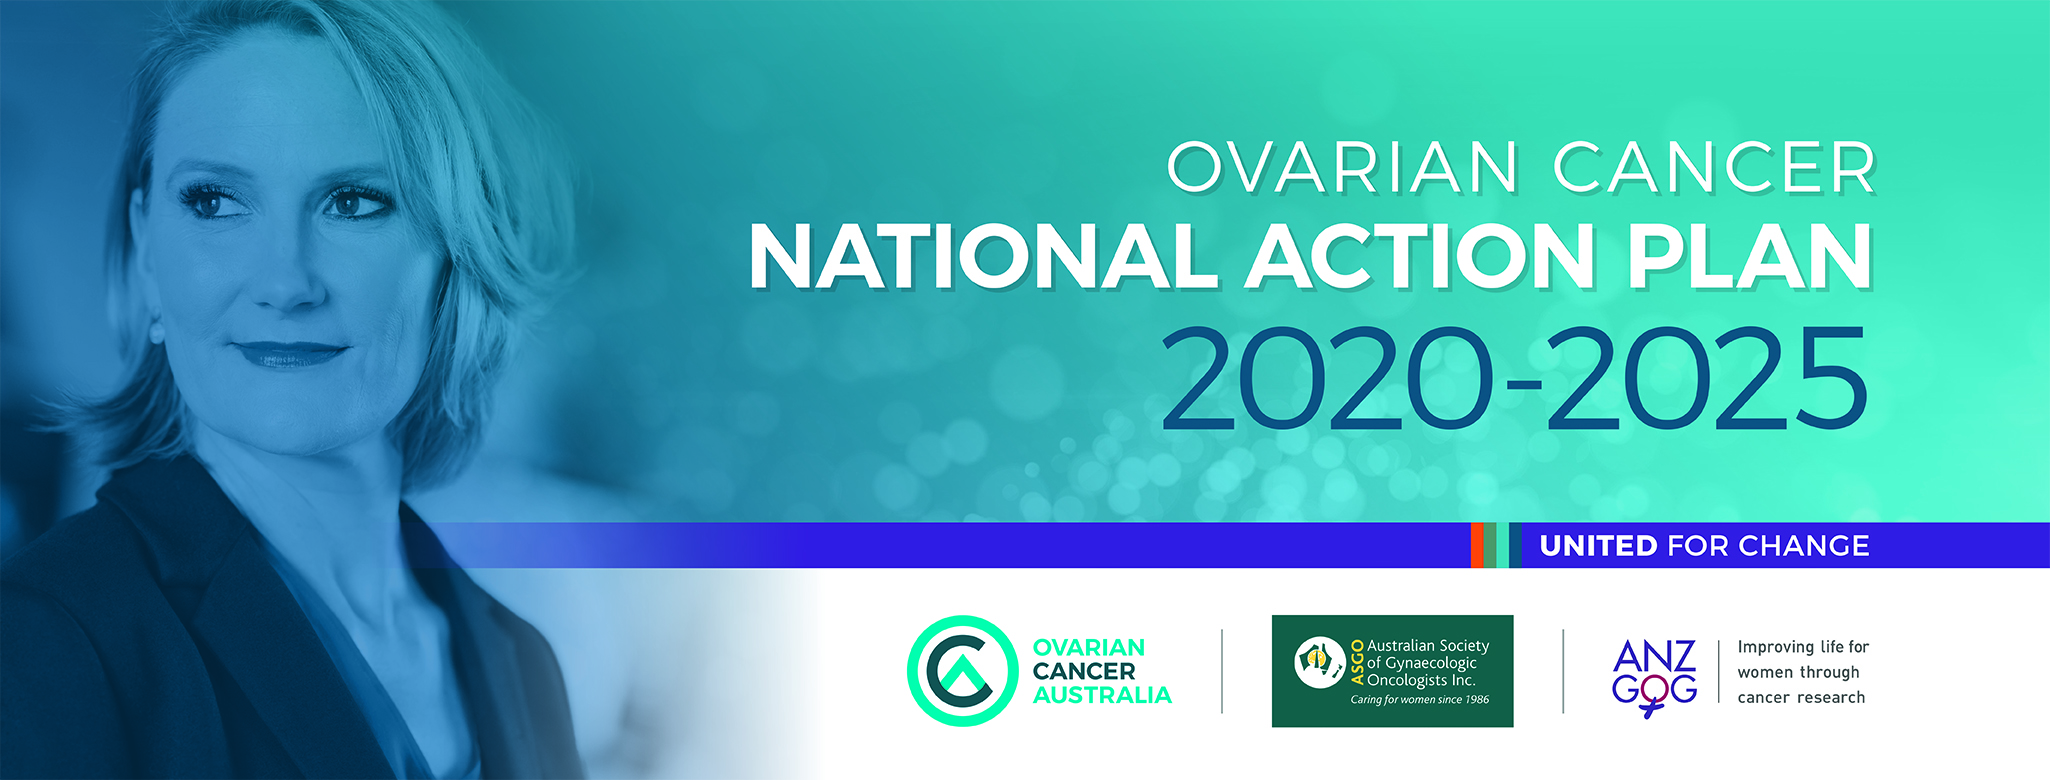 Ovarian Cancer Australia News Sector Unites For Change To Launch New National Action Plan For Ovarian Cancer